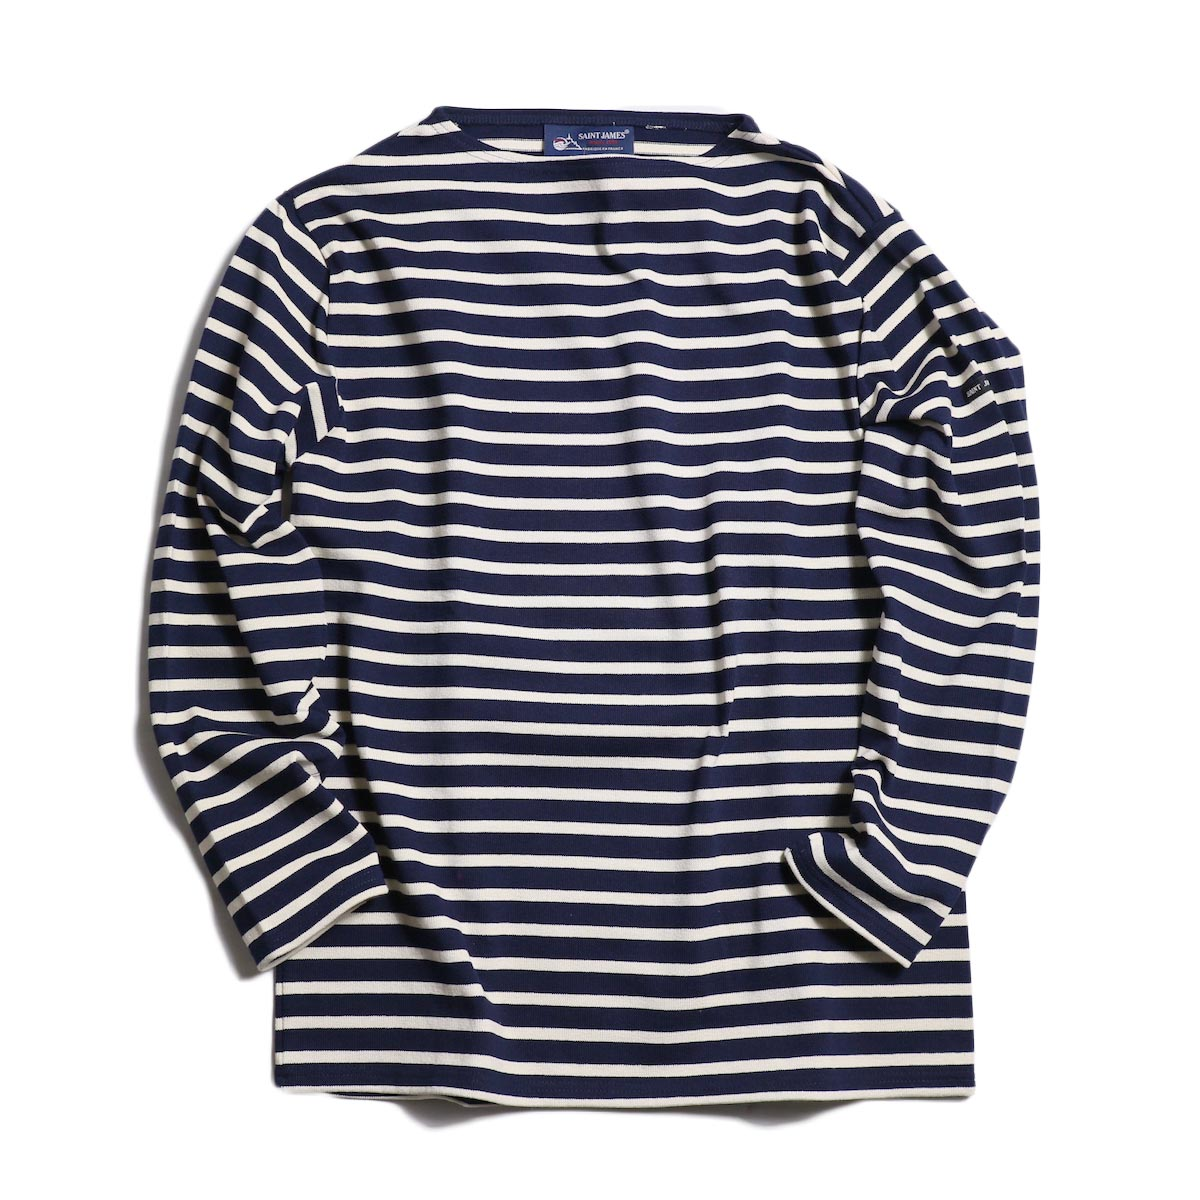 SAINT JAMES / OUESSANT R A -NAVY/ECRU